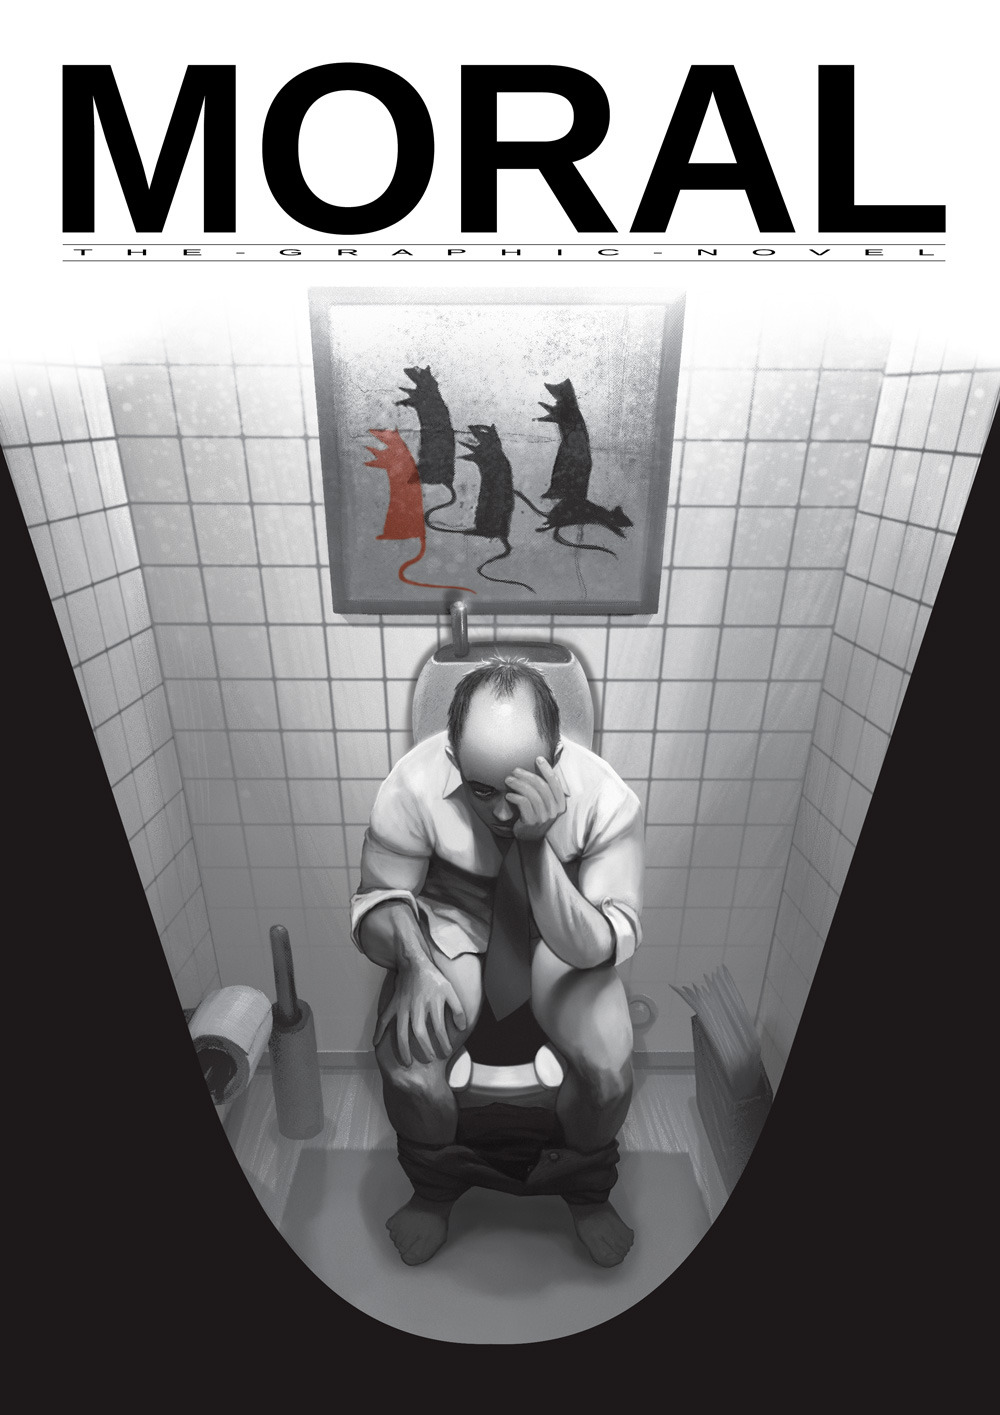 Moral - The Graphic Novel